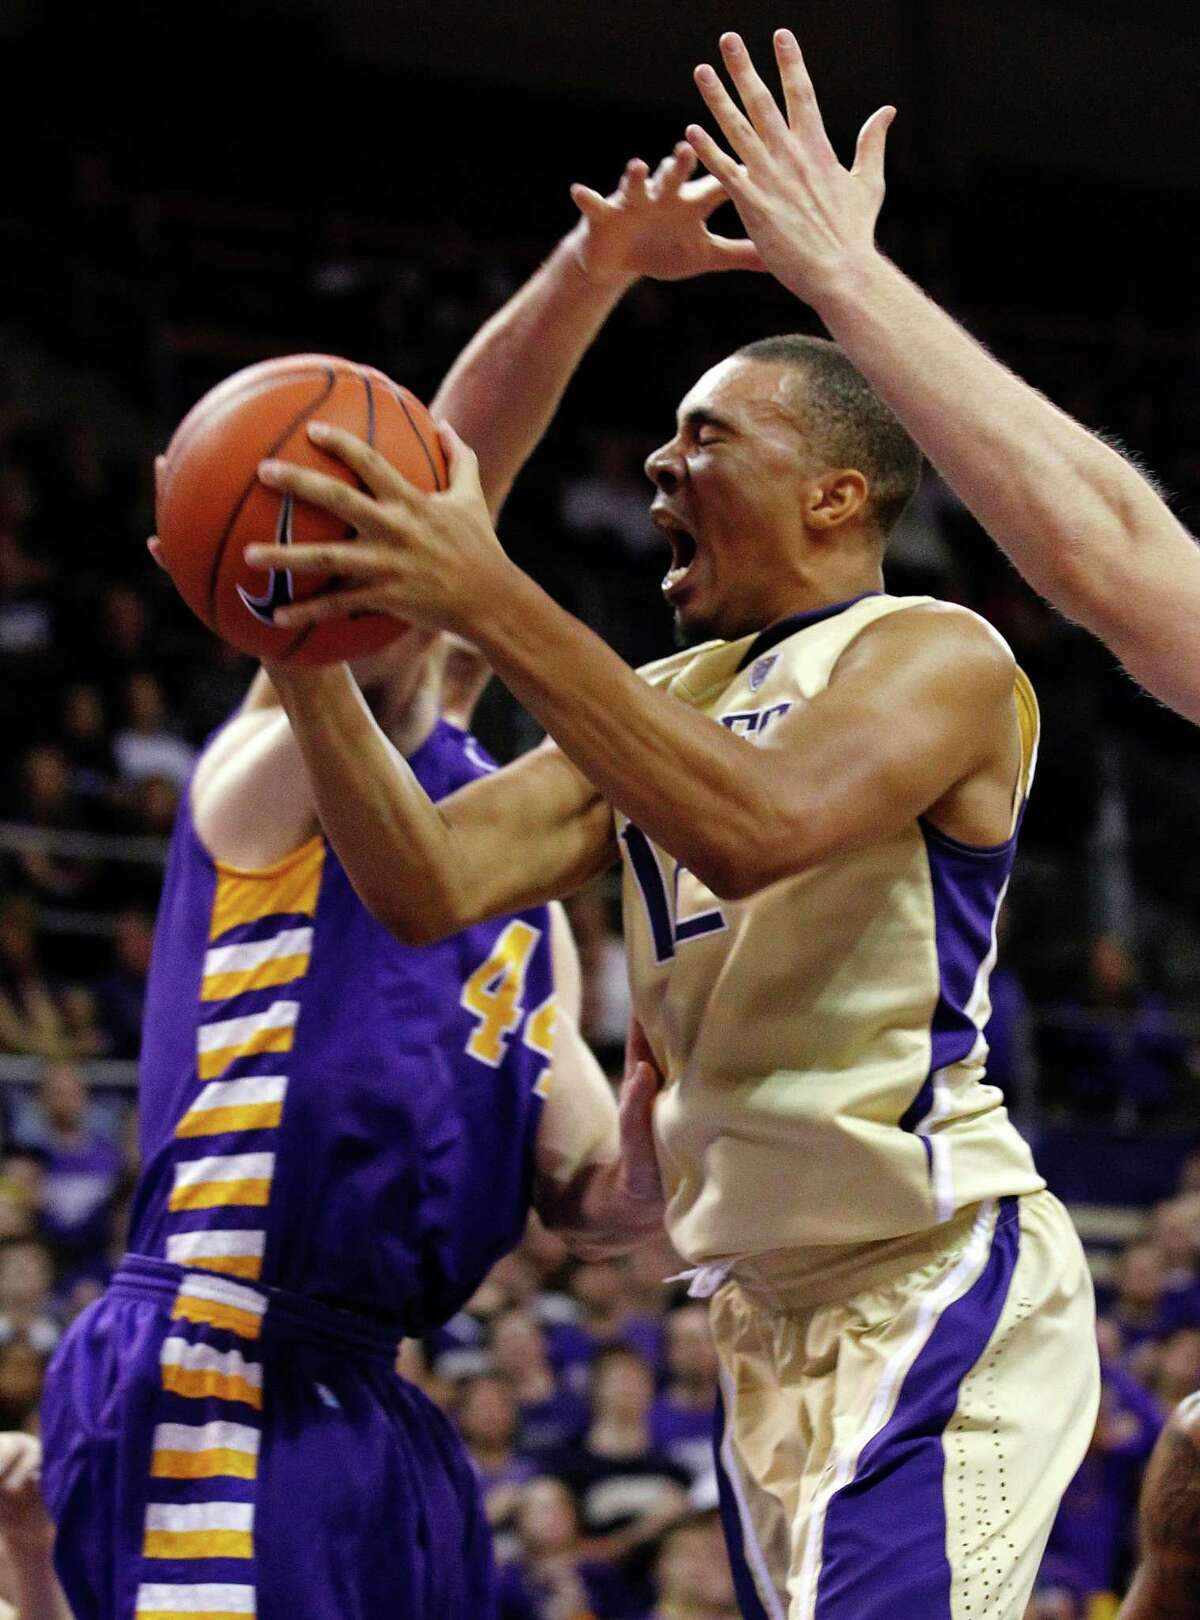 Washington's Andrew Andrews tries to drive between a pair of Albany defenders in the second half of an NCAA college basketball game, Tuesday, Nov. 13, 2012, in Seattle. Albany won 63-62.